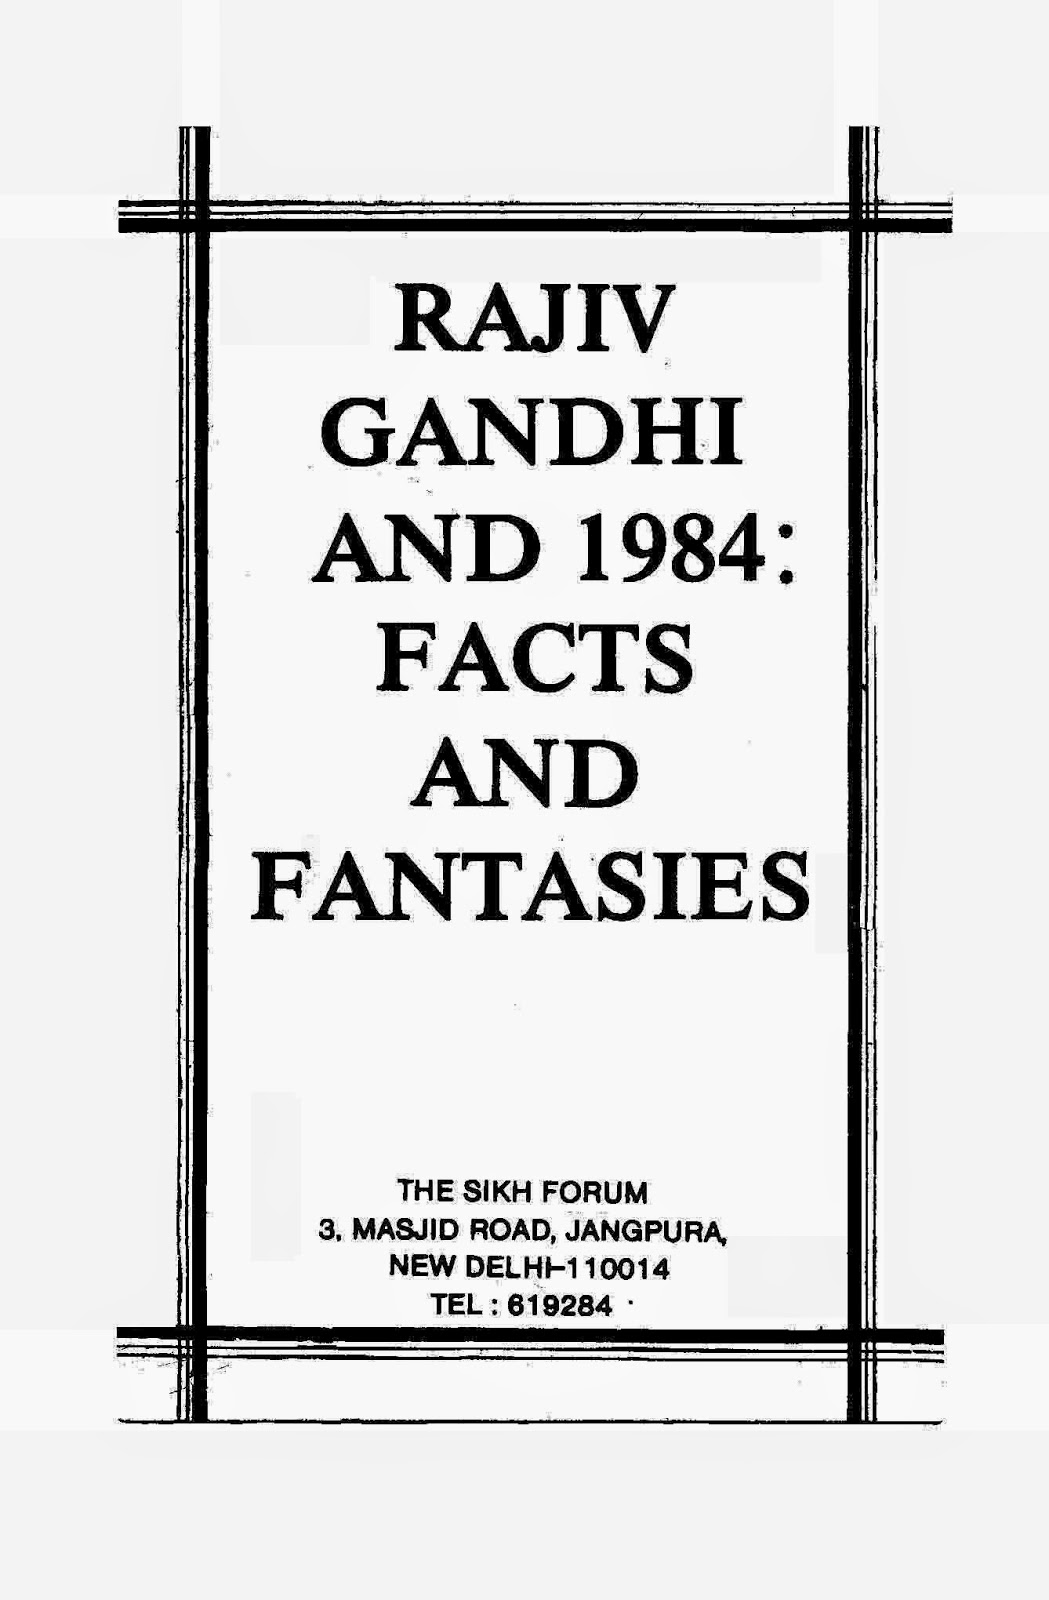 http://sikhdigitallibrary.blogspot.com/2015/05/rajiv-gandhi-and-1984-facts-and.html